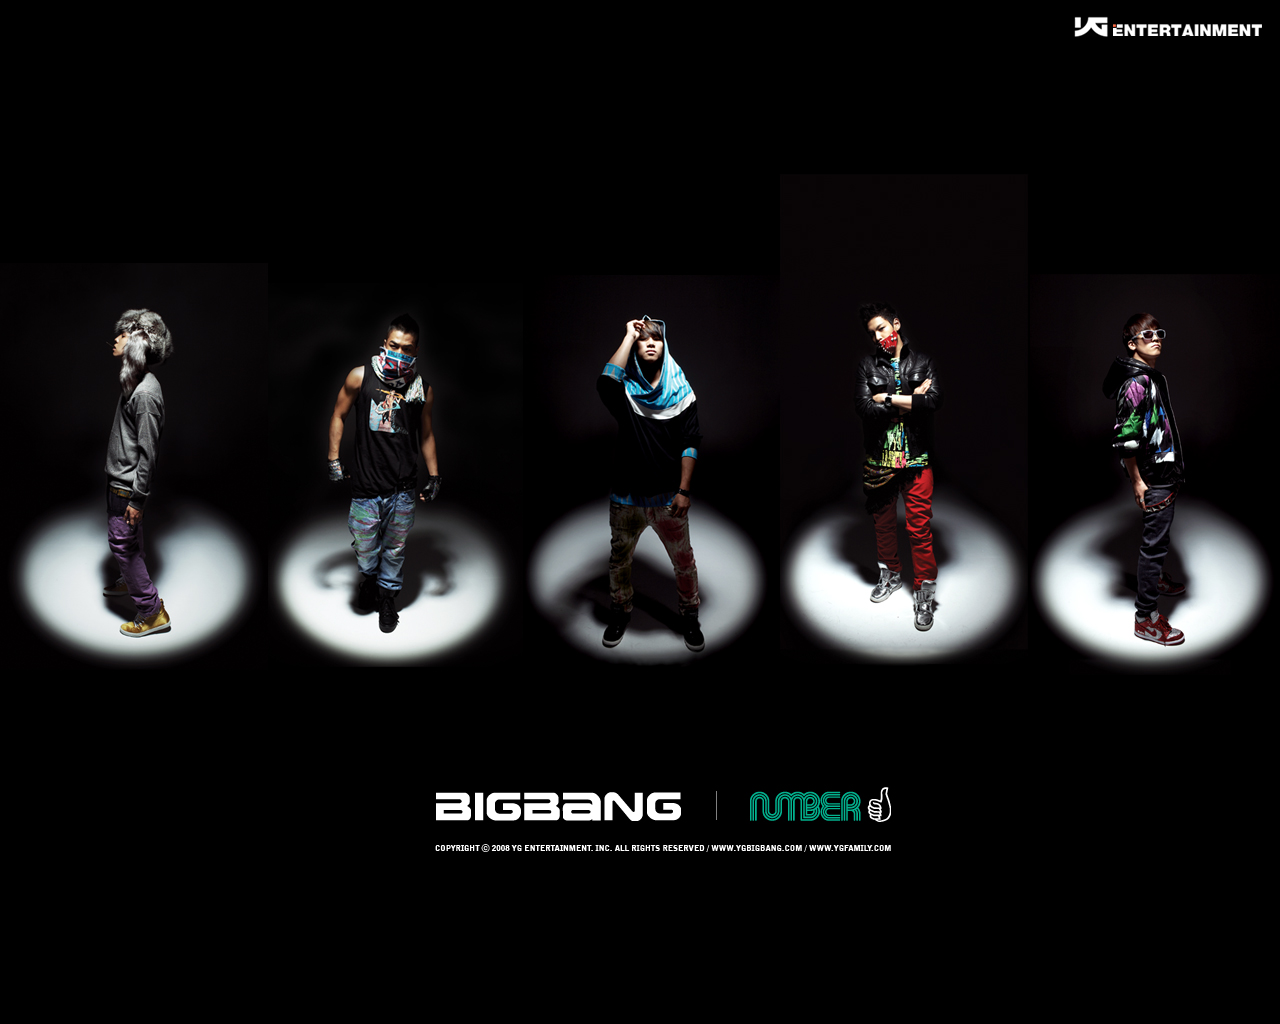 Big Bang wallpaper  kpop 4ever Wallpaper 32174909  Fanpop